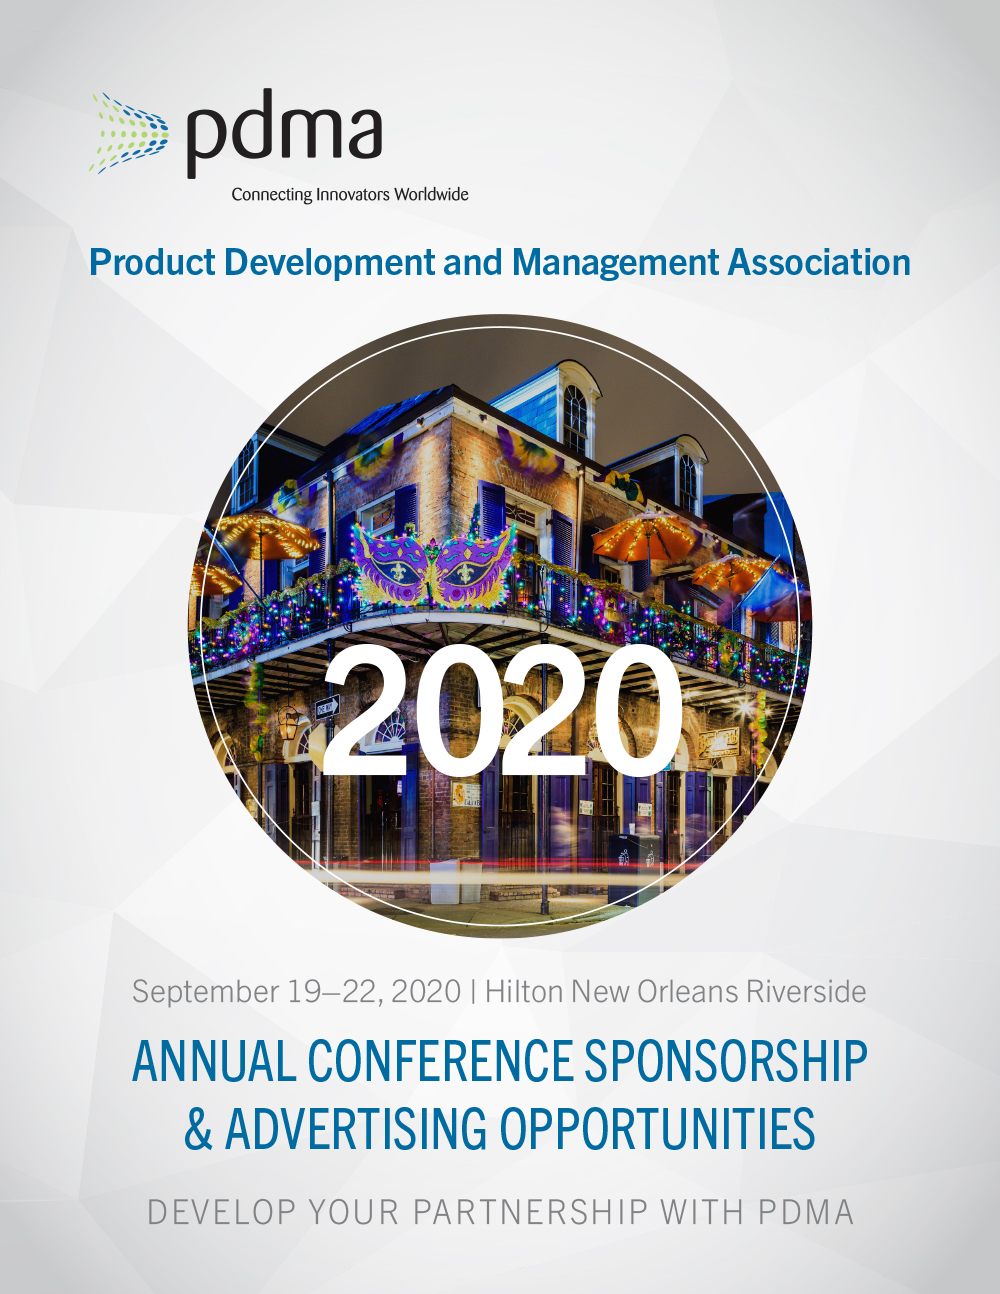 PDMA Annual Conference Sponsorship & Advertising Opportunities prospectus